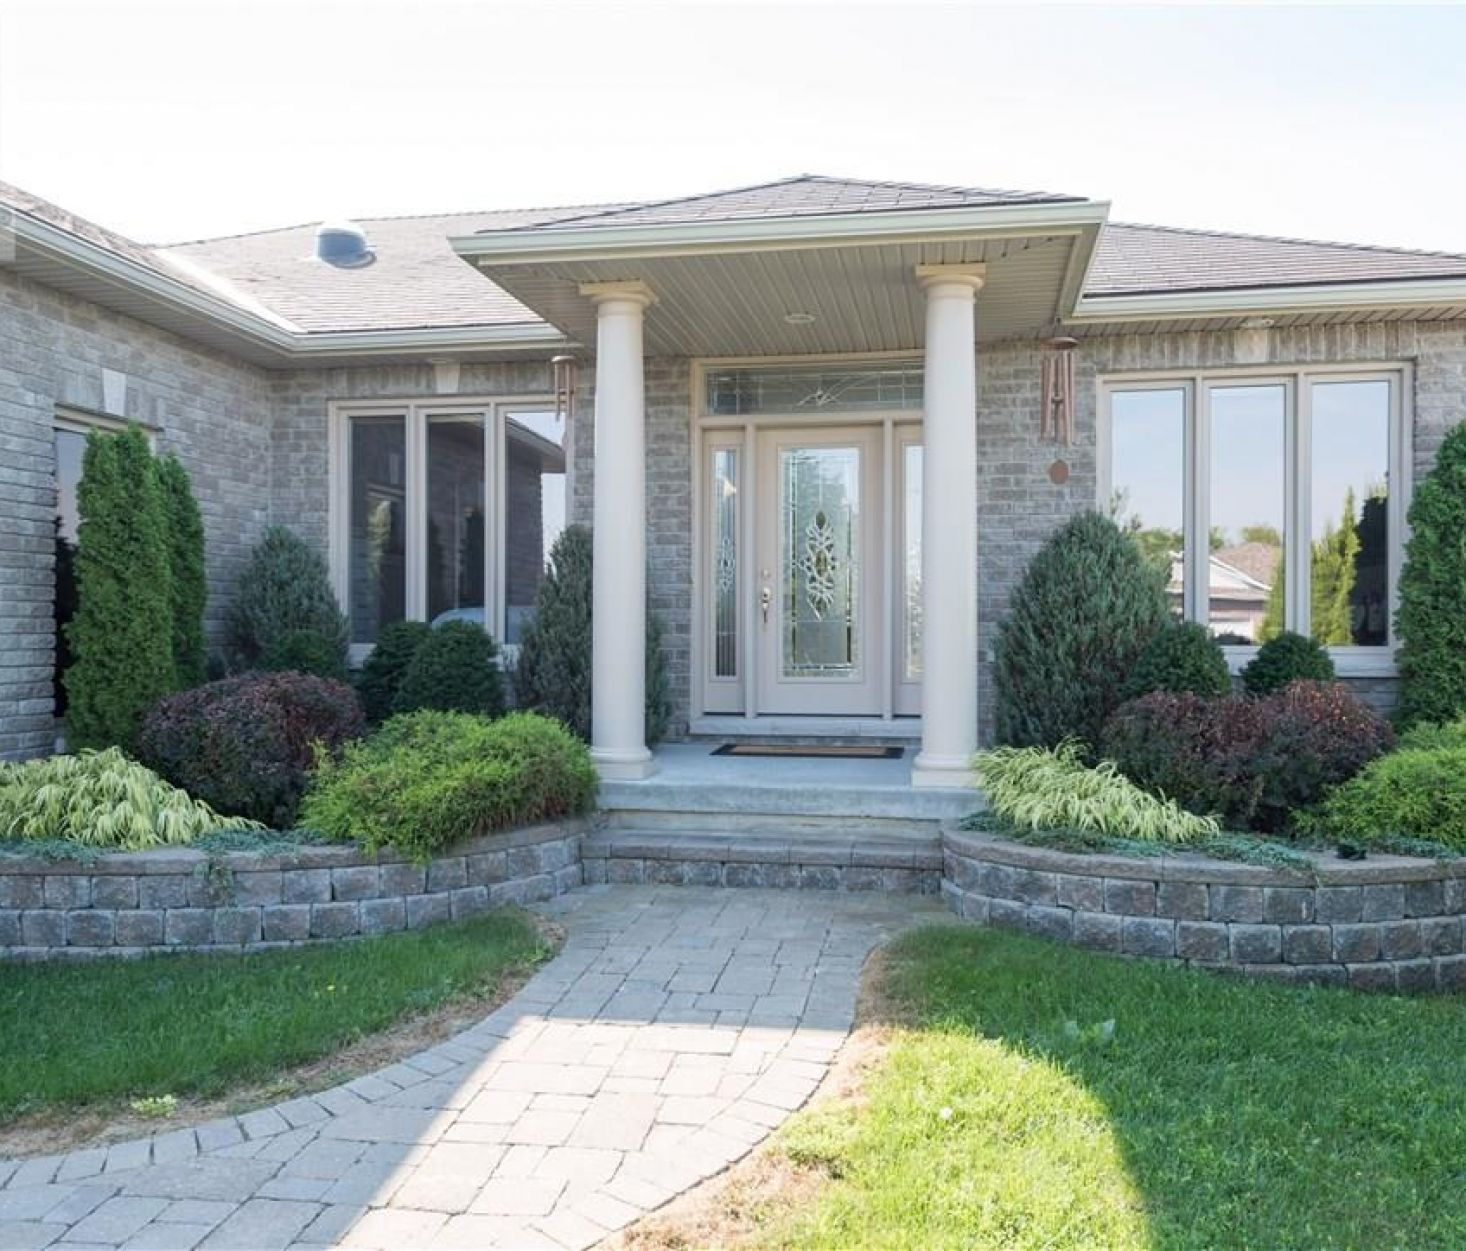 49 LAKE BREEZE COURT, Prince Edward County****SOLD****